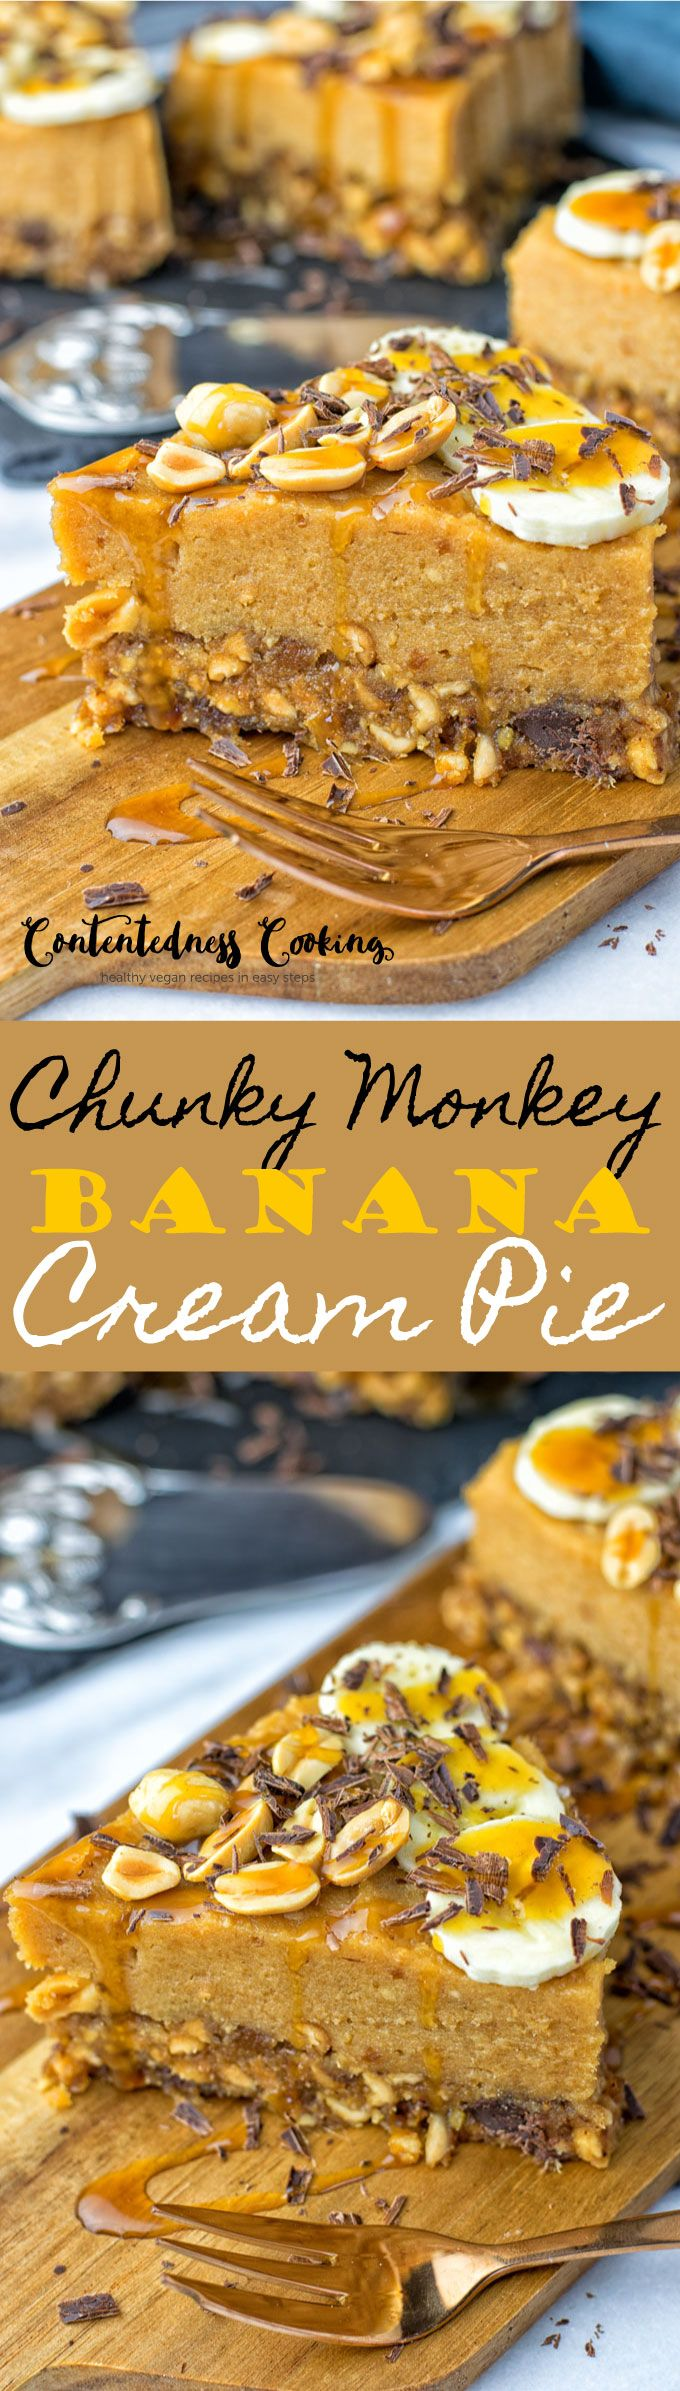 Chunky Monkey Banana Cream Pie | #vegan #glutenfree #contentednesscooking